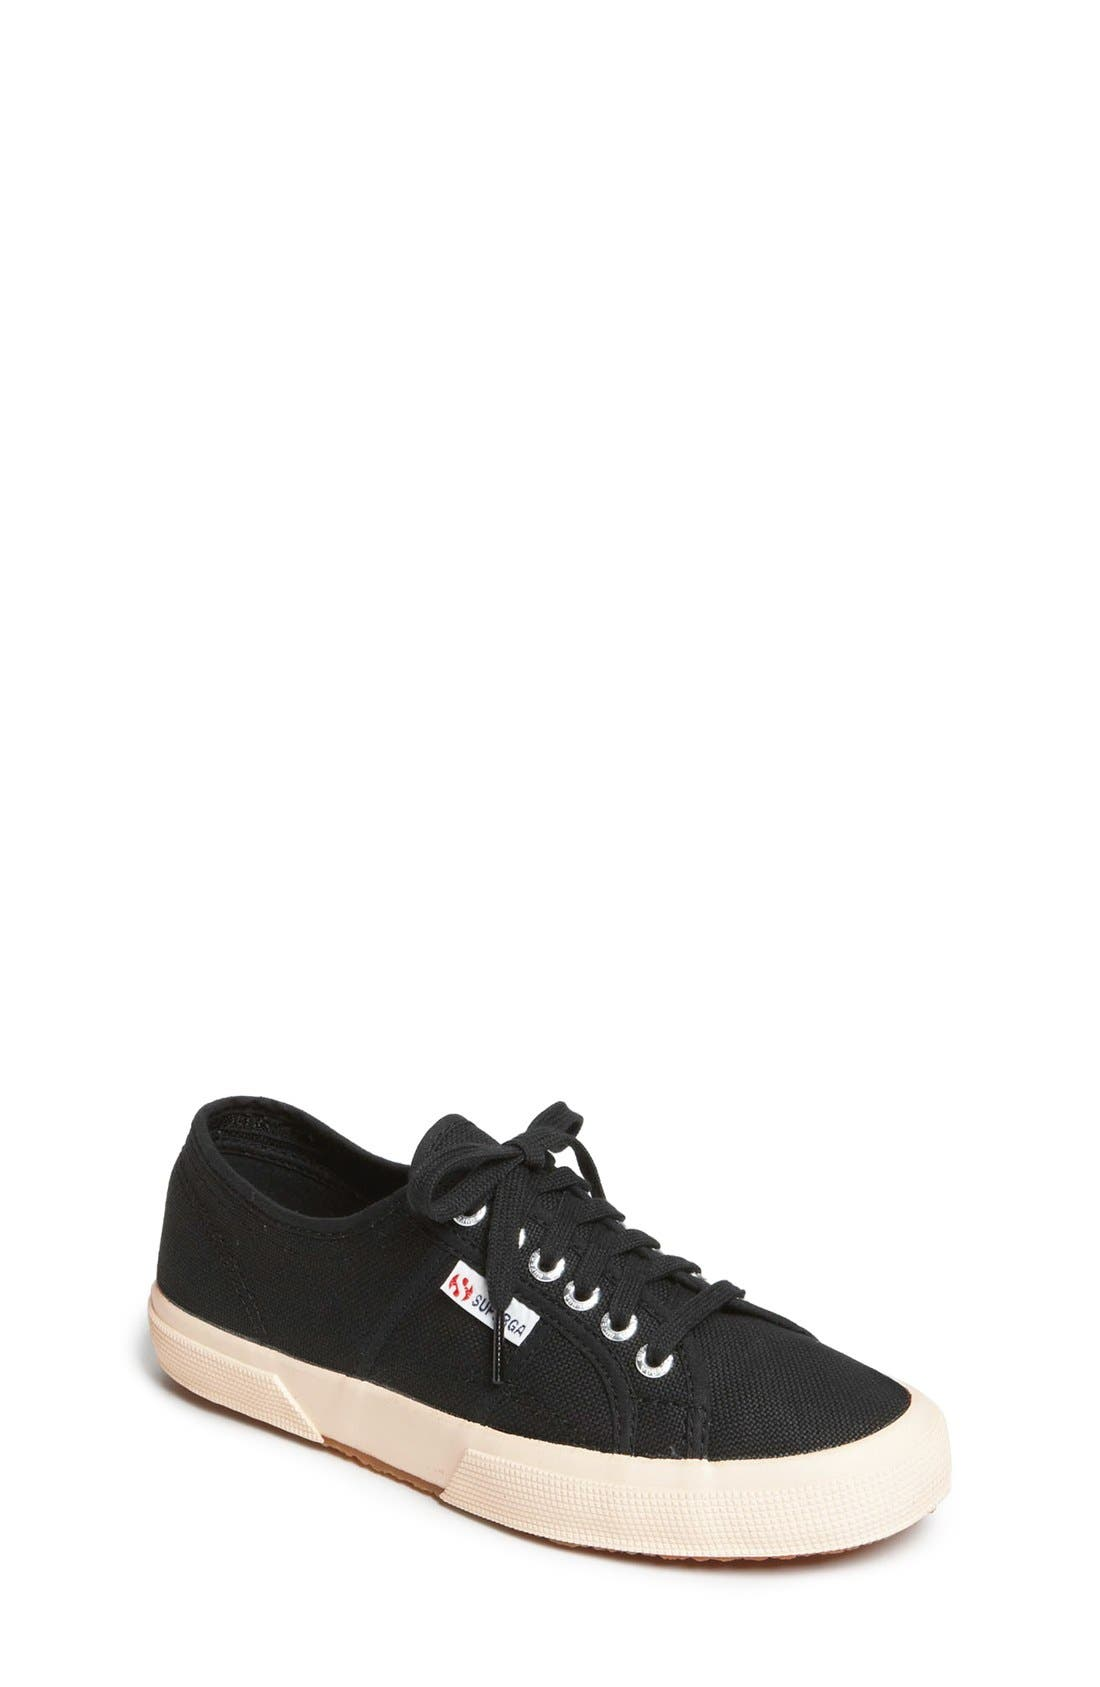 'Cotu' Sneaker,                             Main thumbnail 1, color,                             BLACK CANVAS